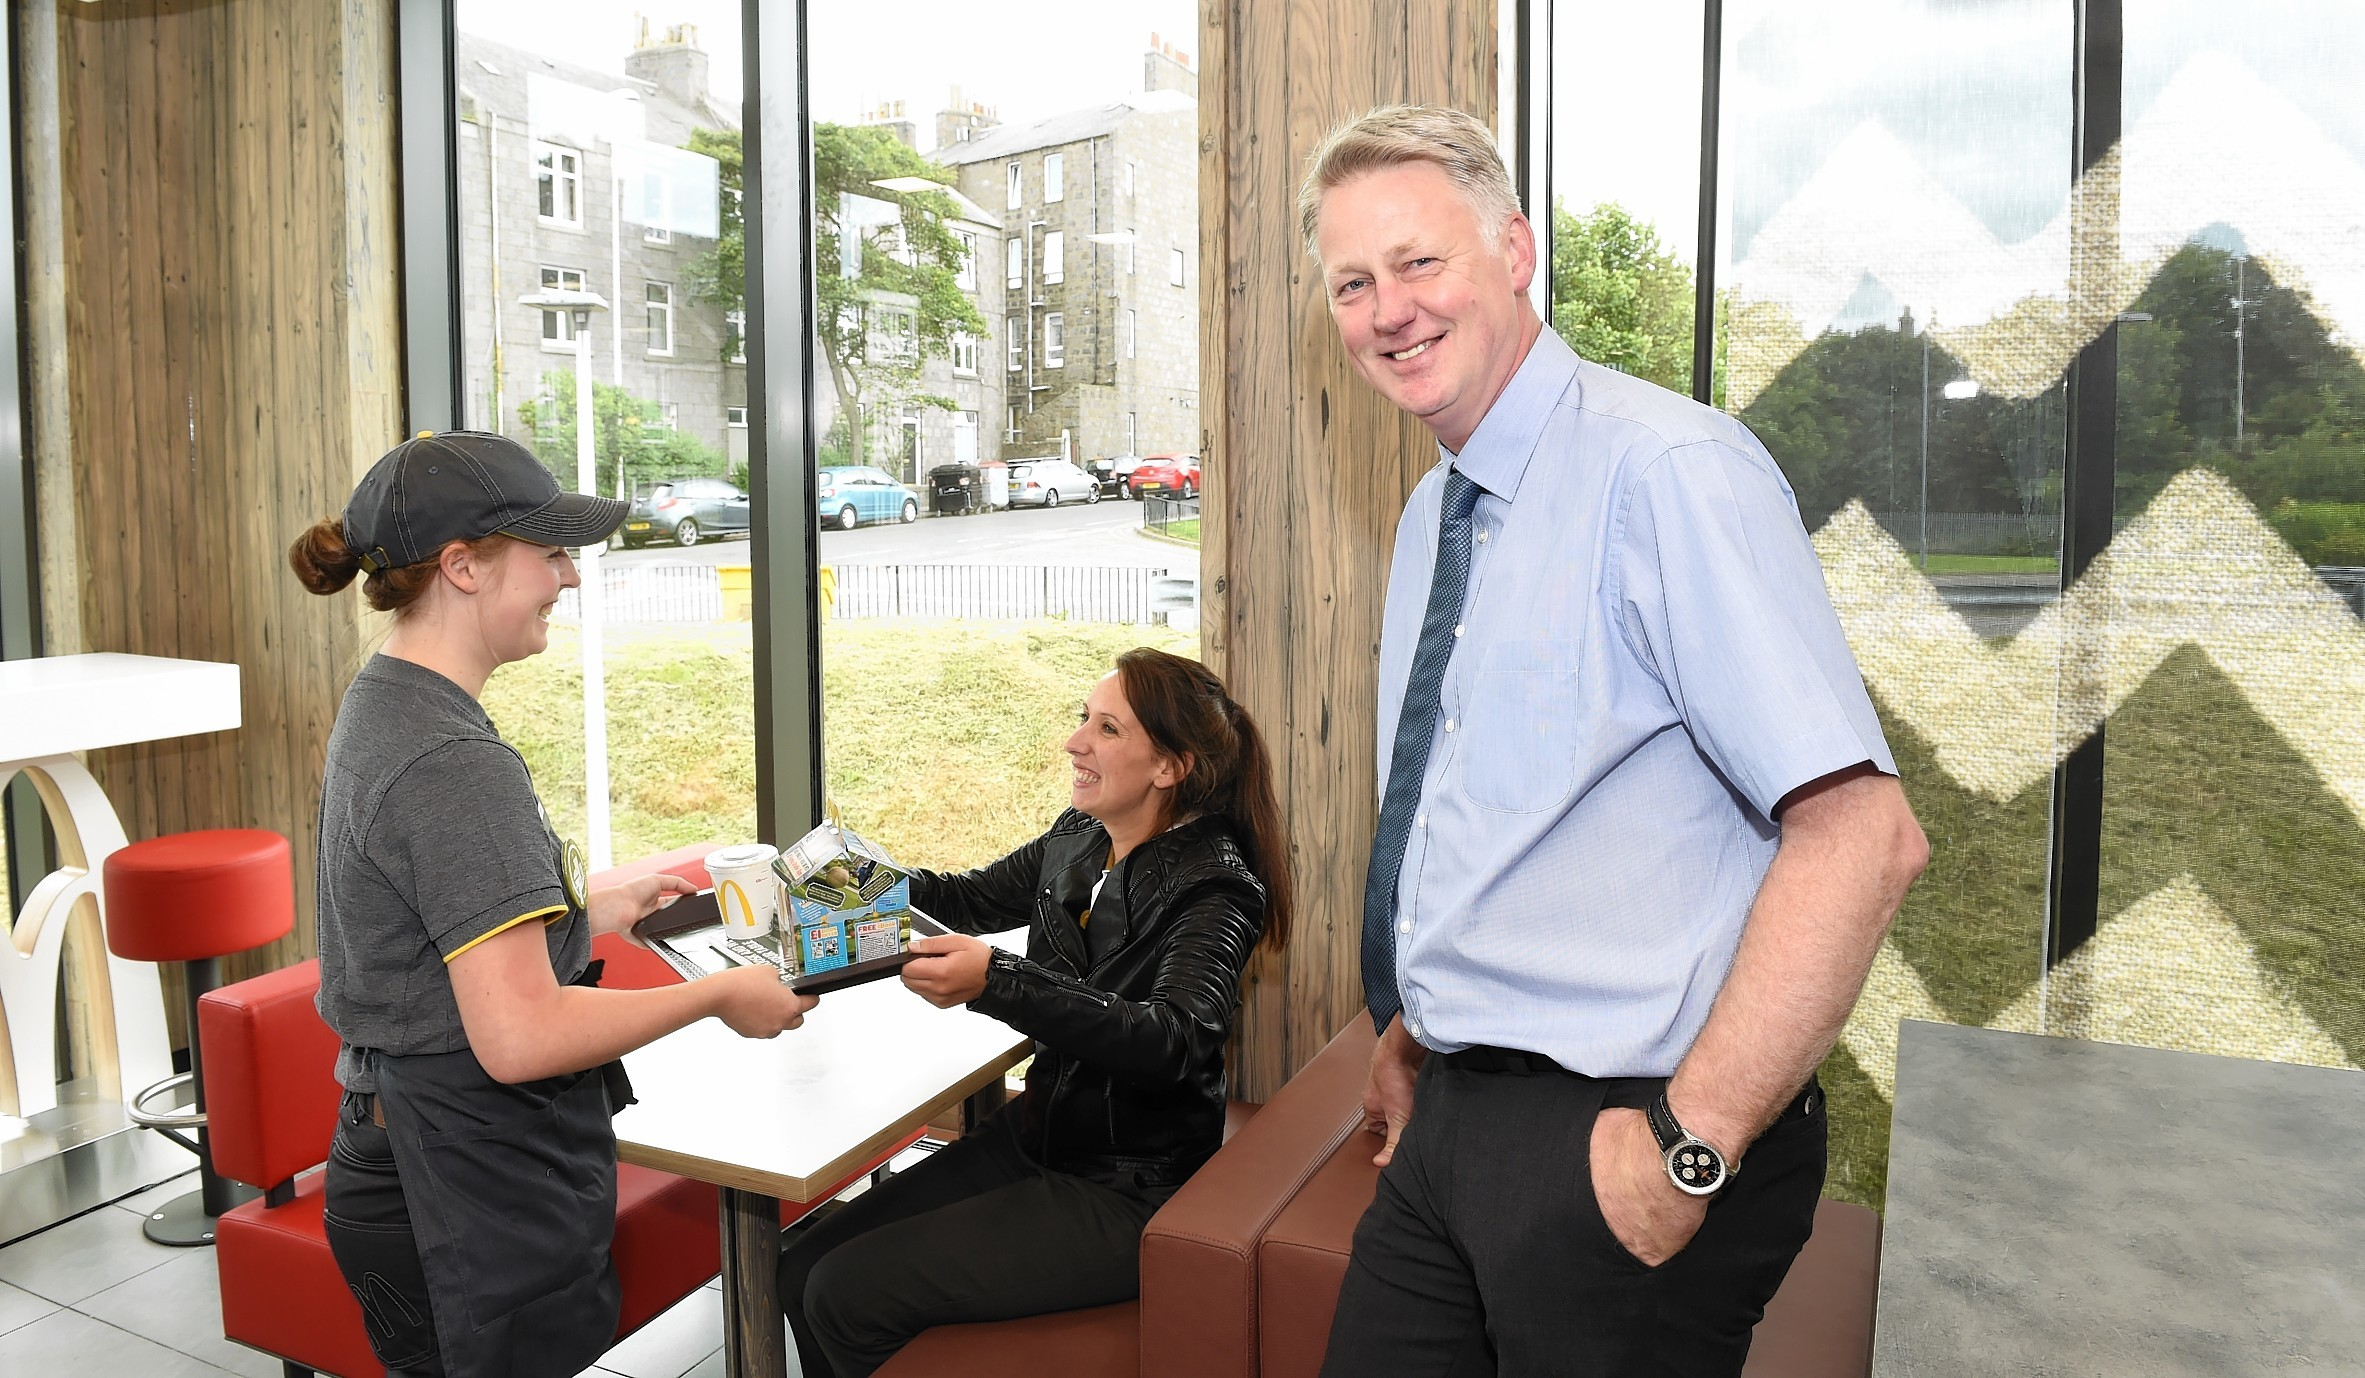 Owner of the newly opened McDonald's, Craig Duncan, at the premises in Kittybrewster Retail Park.